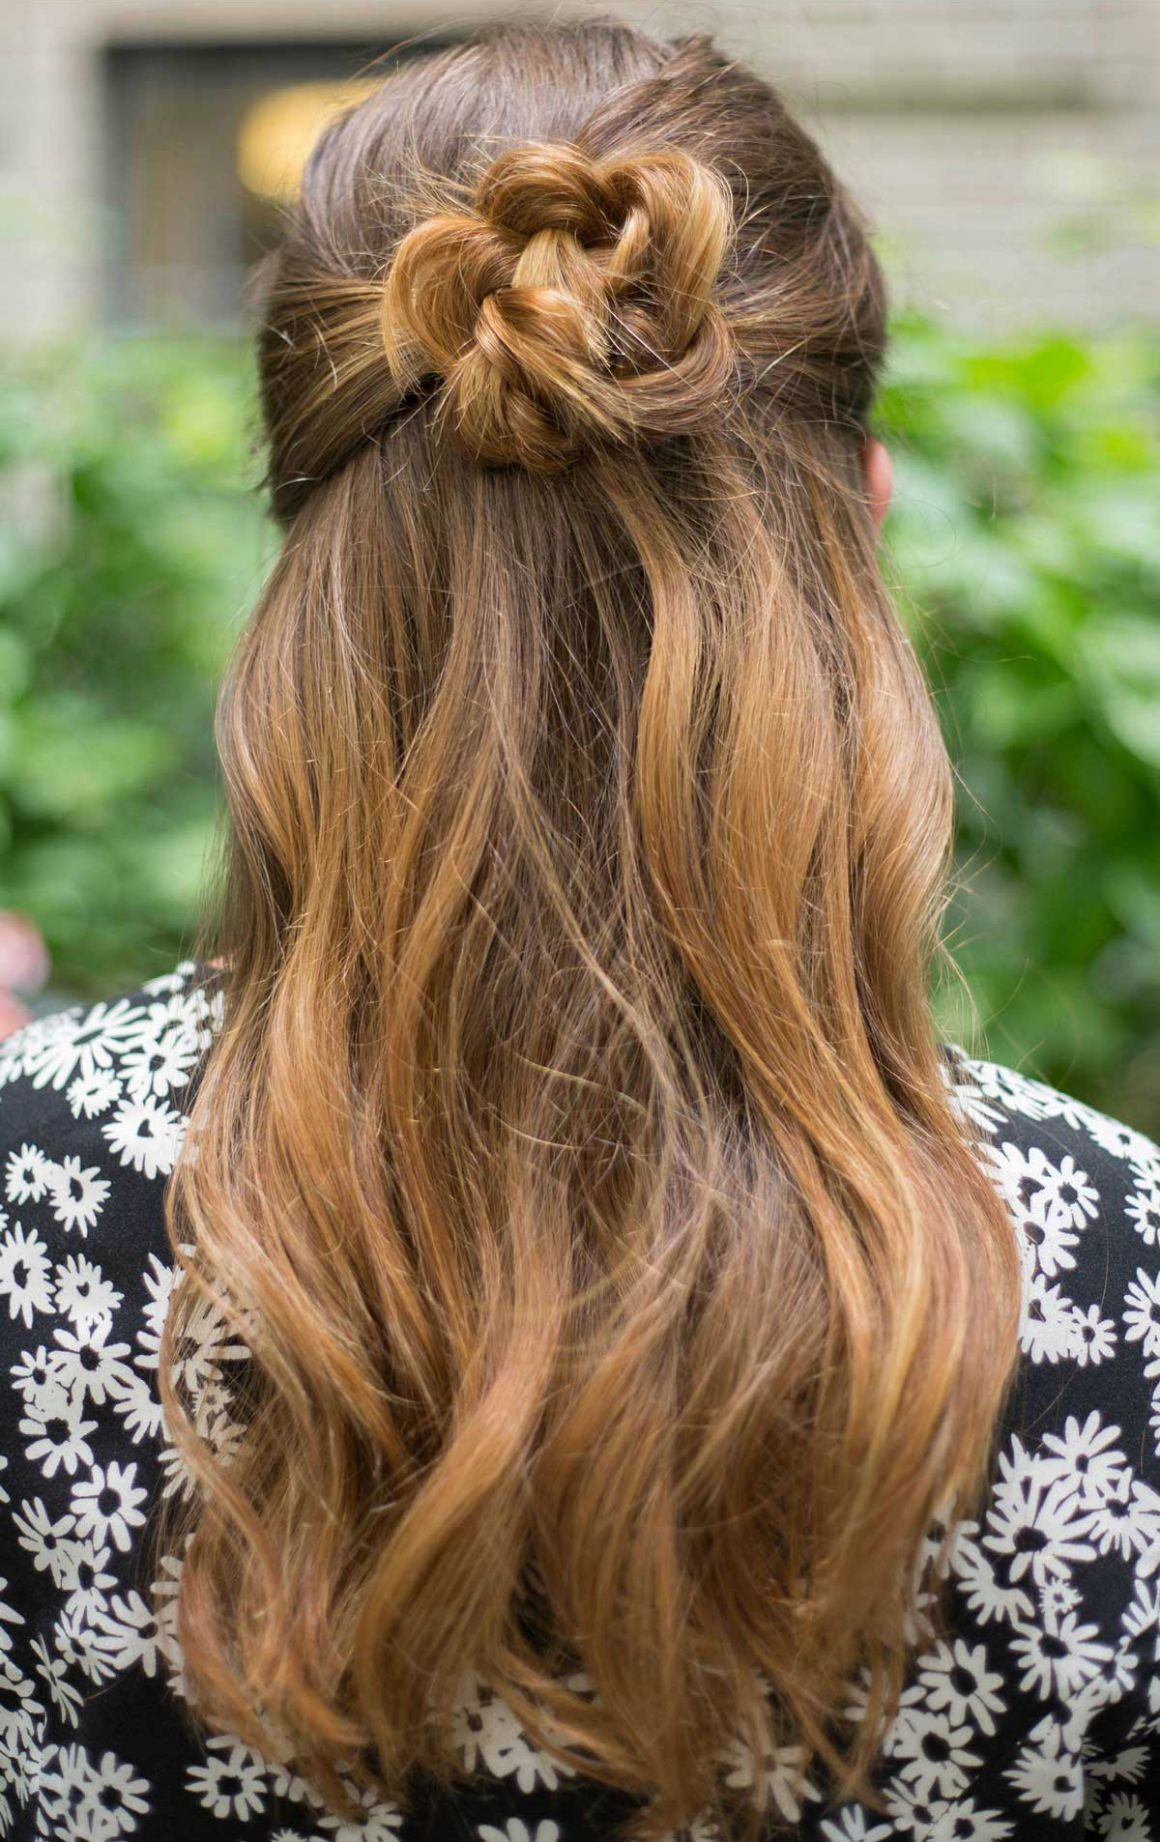 Flower Girl Hair Easy Hairstyles Easy Hairstyles For Long Hair Thick Hair Styles